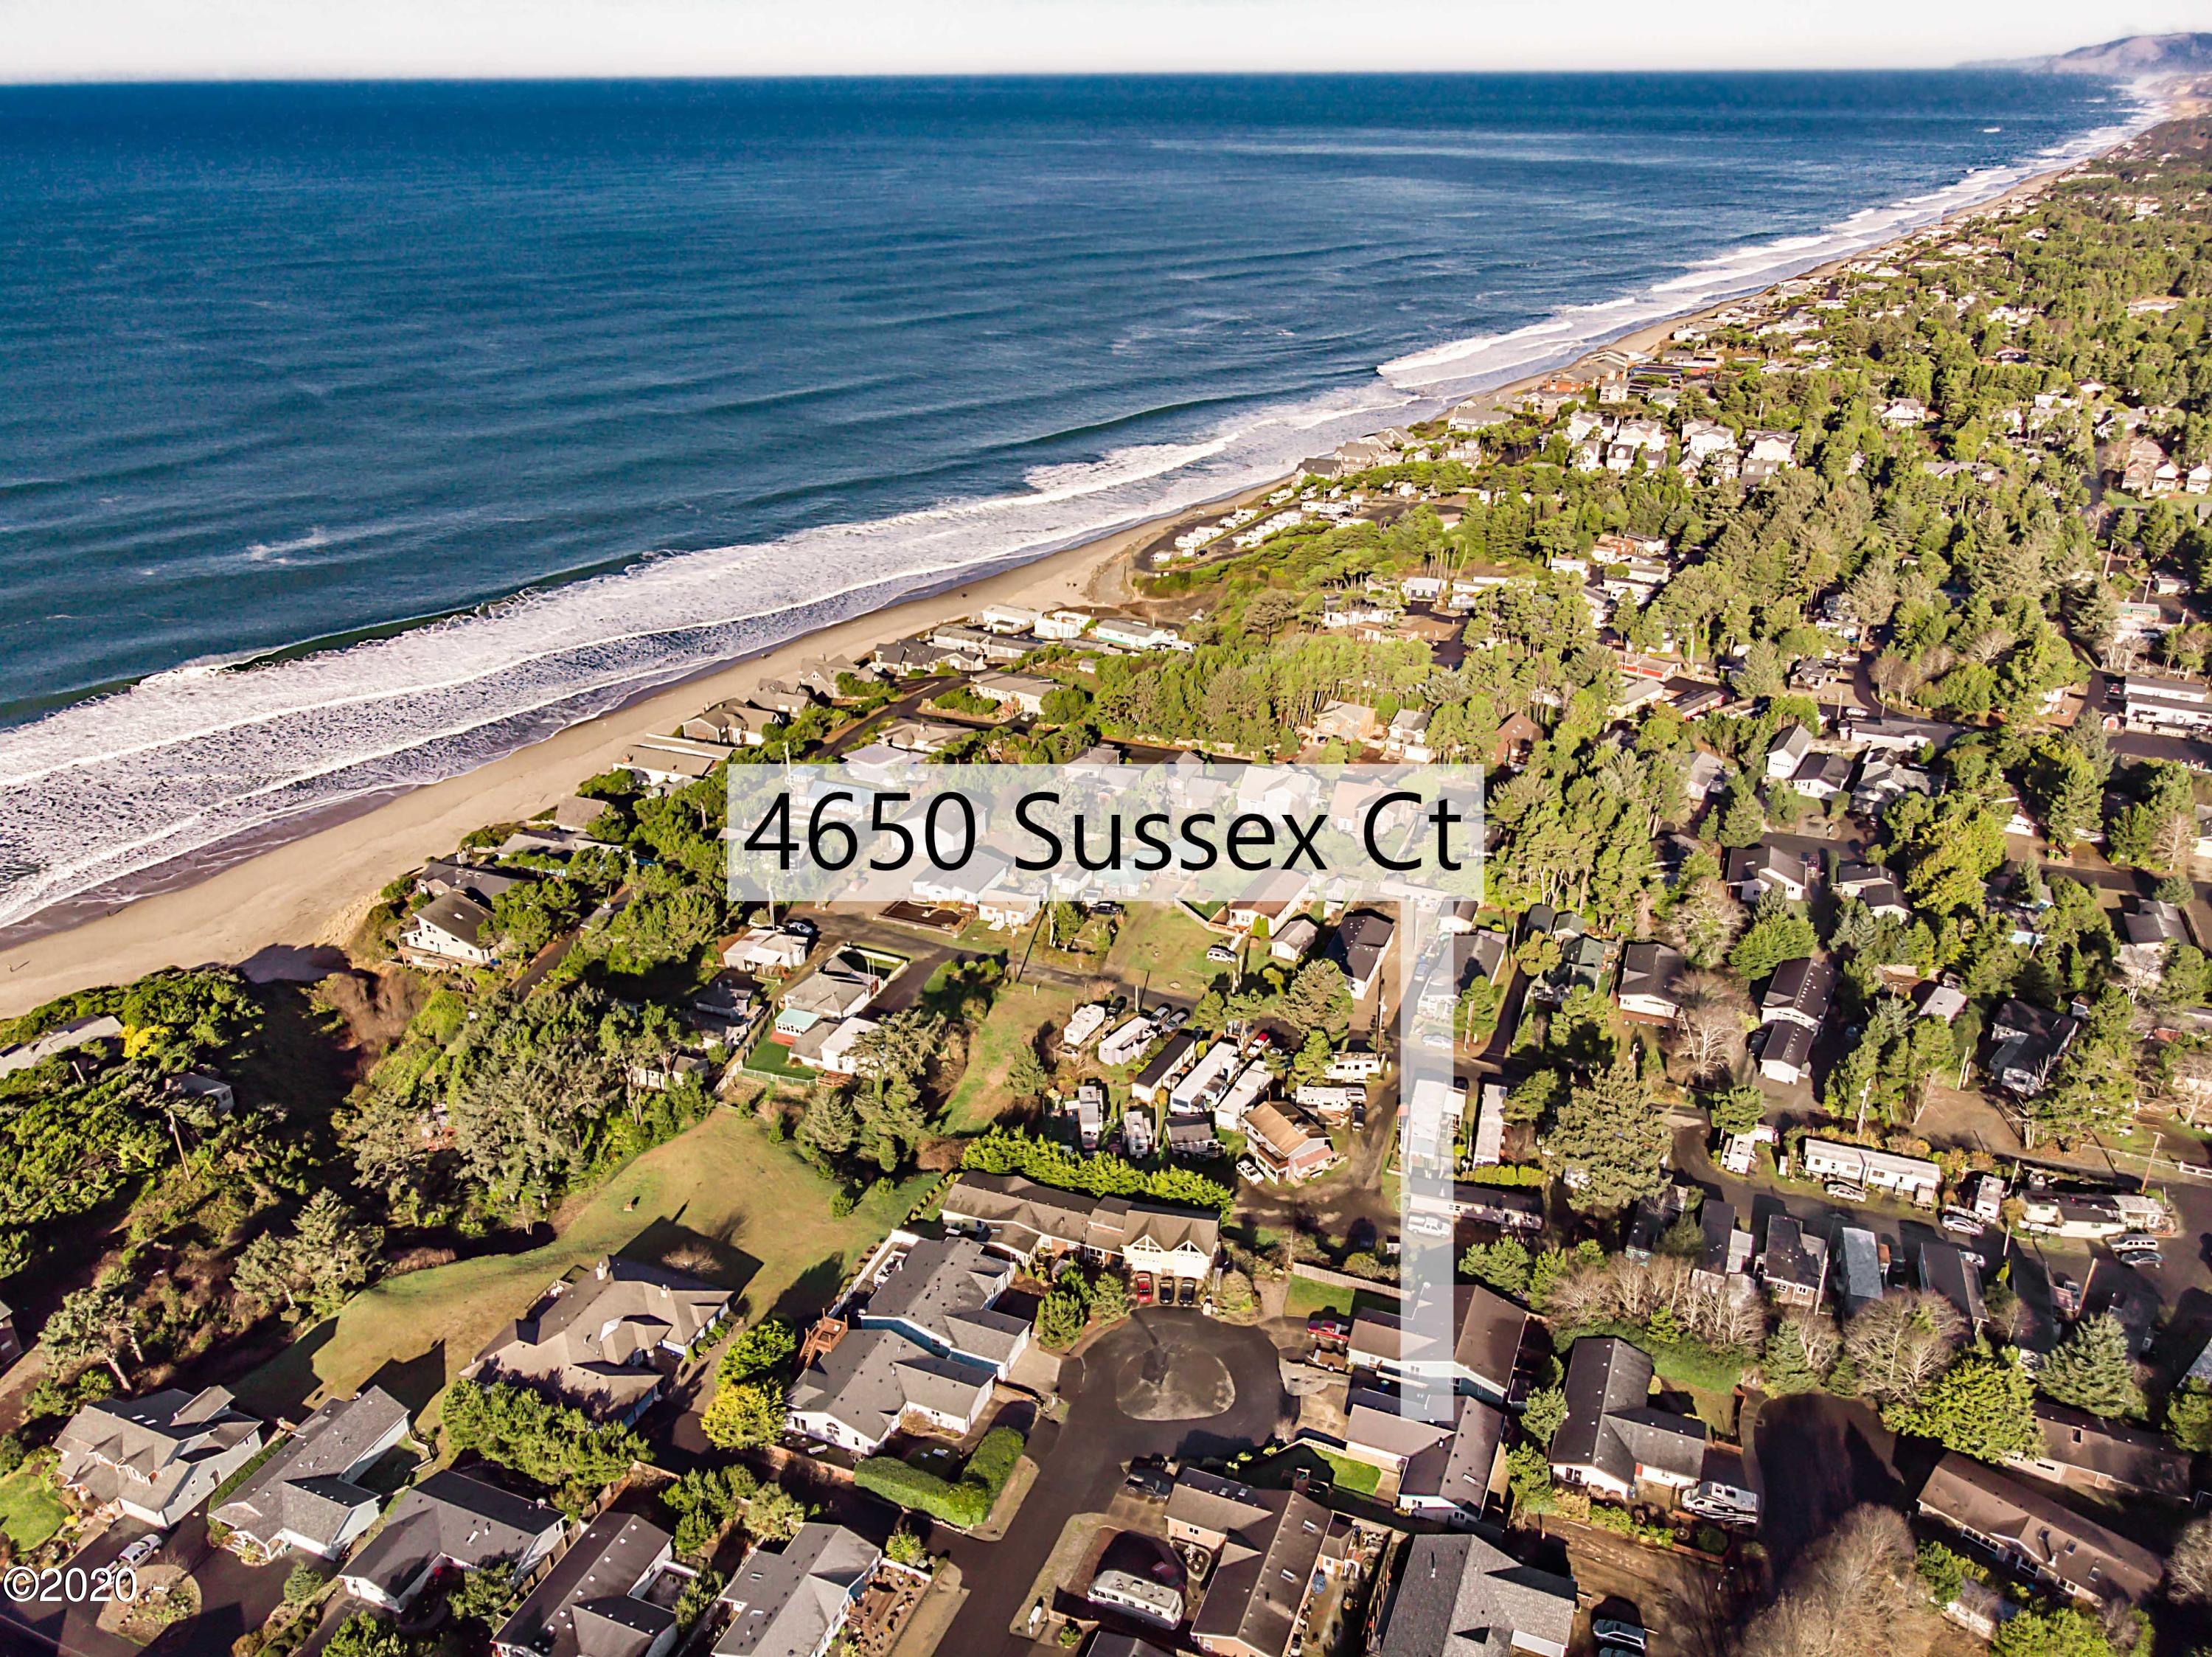 4650 Sussex Ct, Depoe Bay, OR 97341 - 4650 Sussex Ct